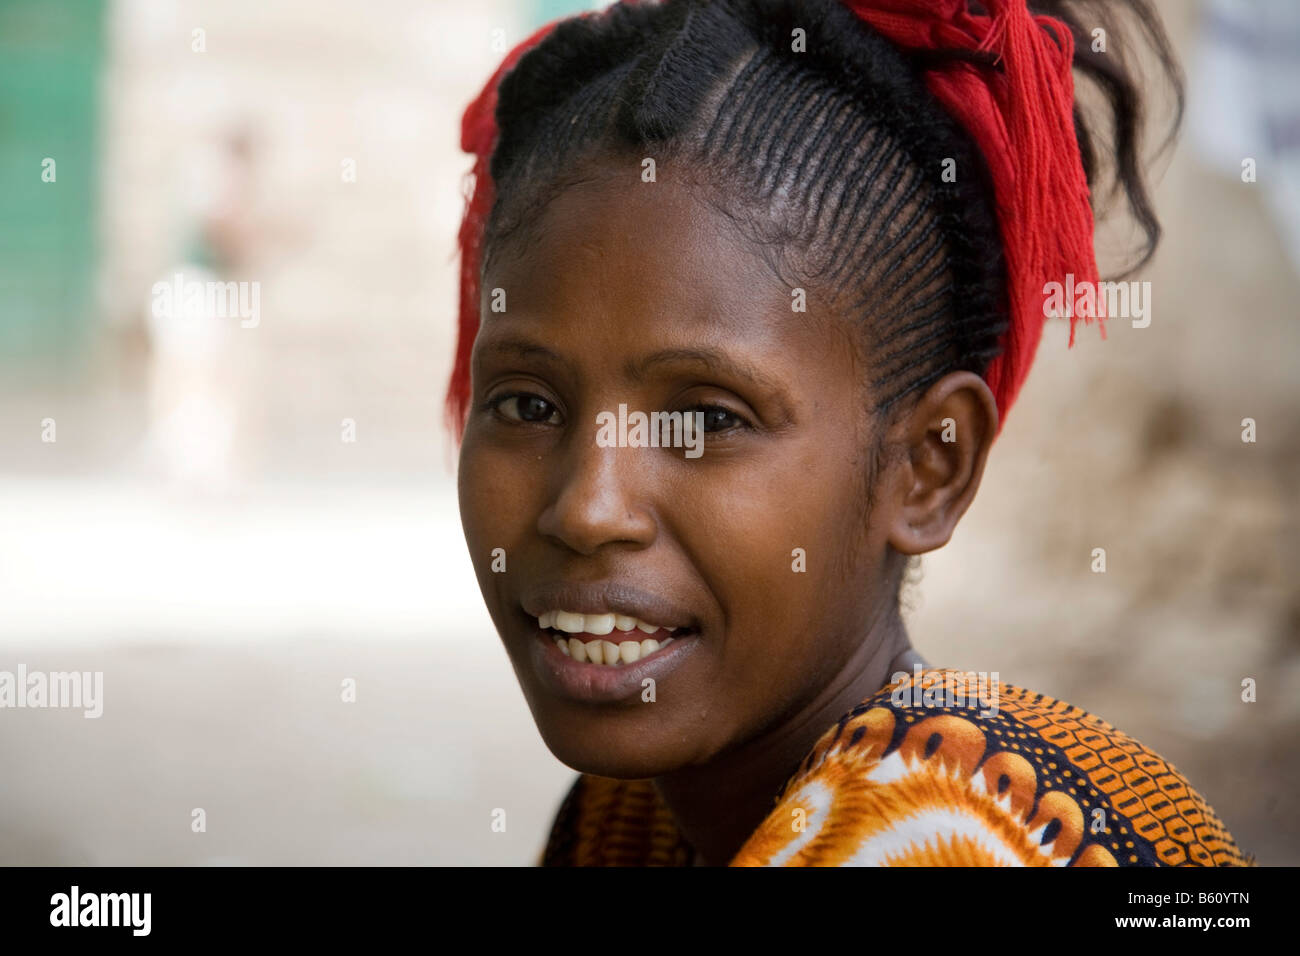 Portrait of a young woman, 20-25 years old, Eritrea, Africa - Stock Image